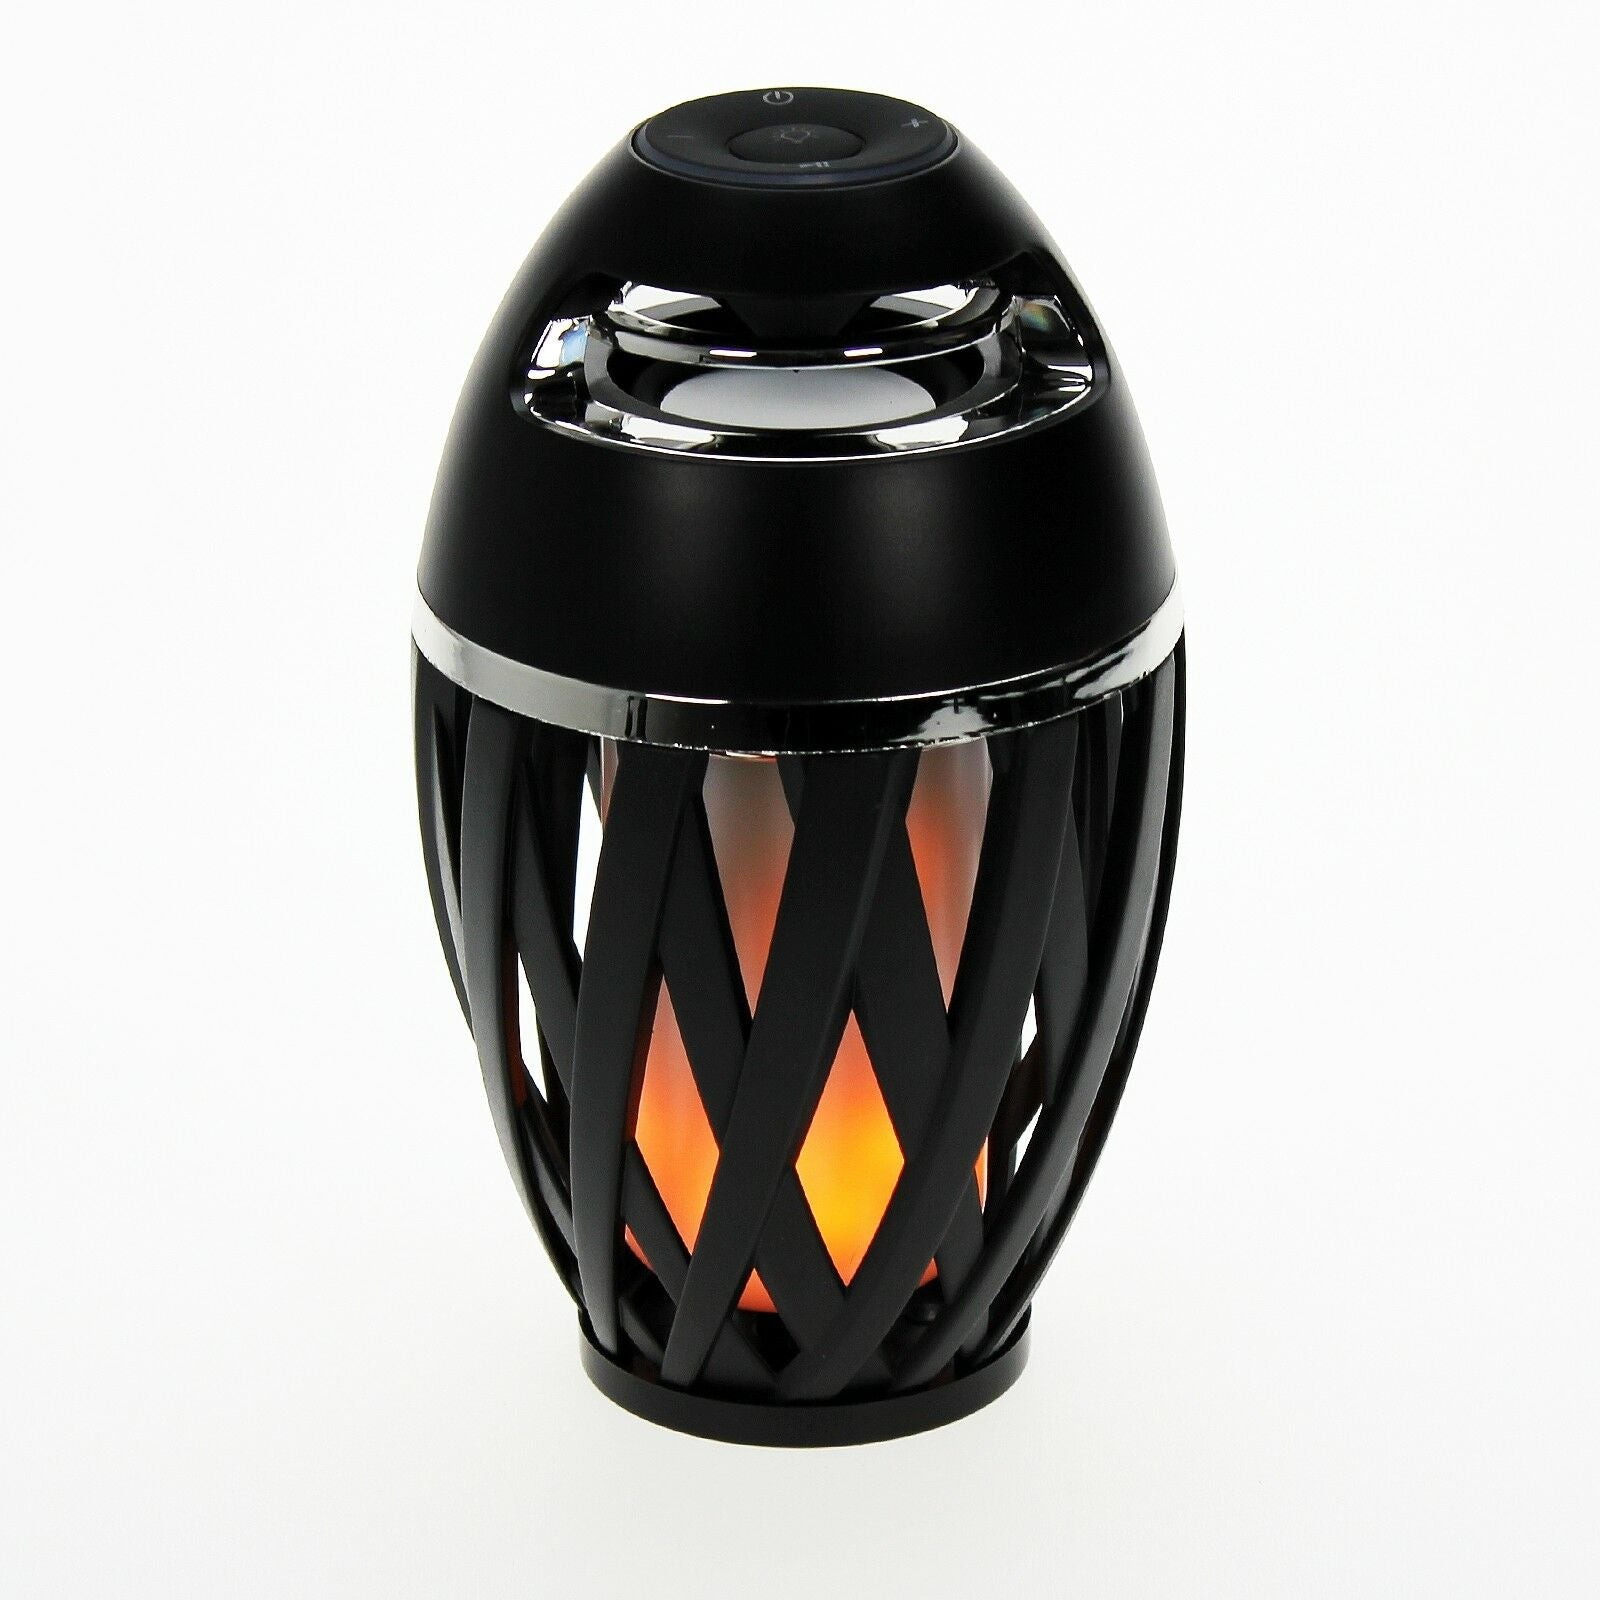 LED Flickering Flame Effect Bluetooth Speaker